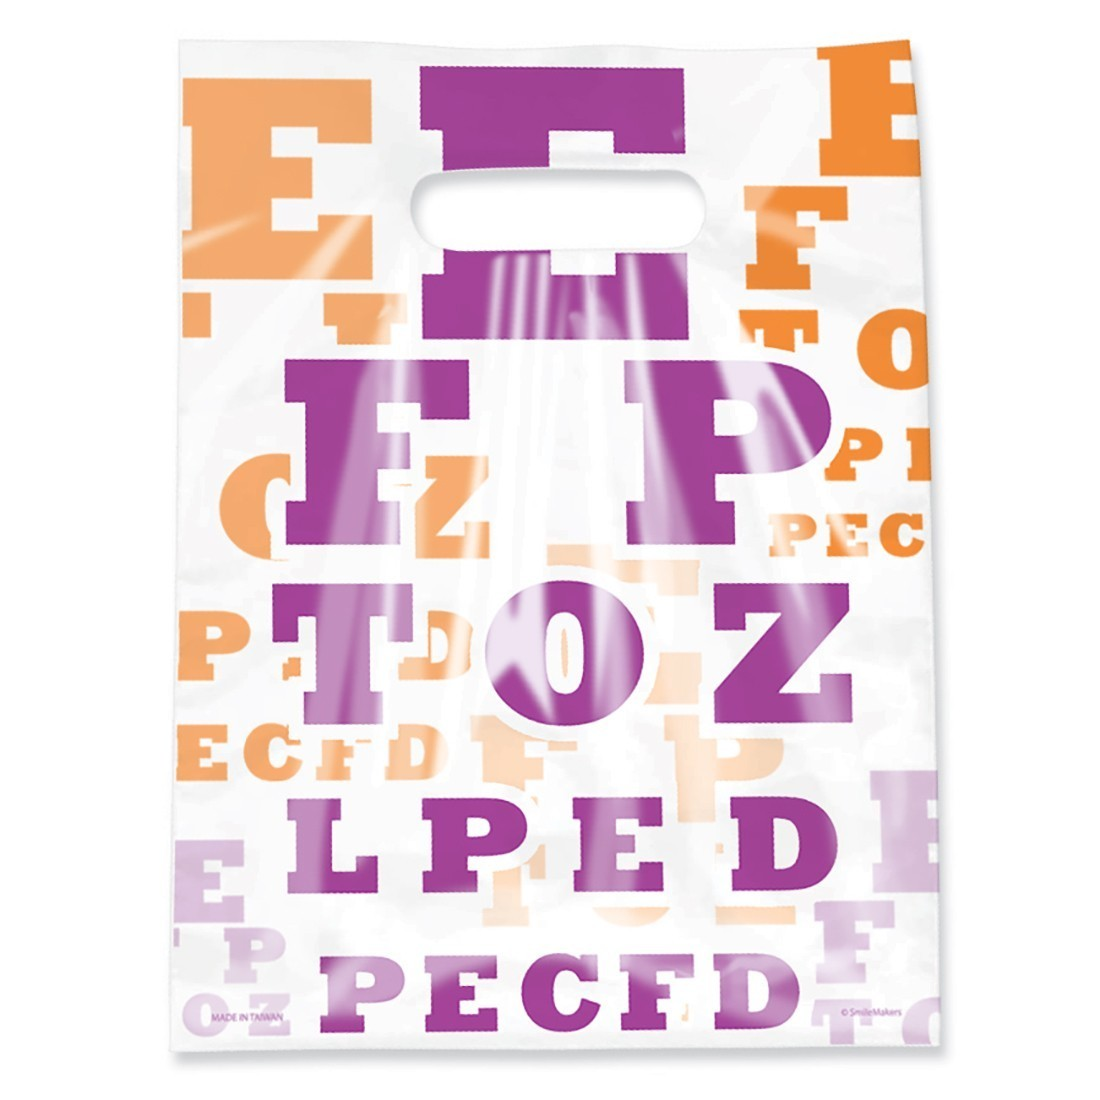 Scatter Eye Chart Bags [image]